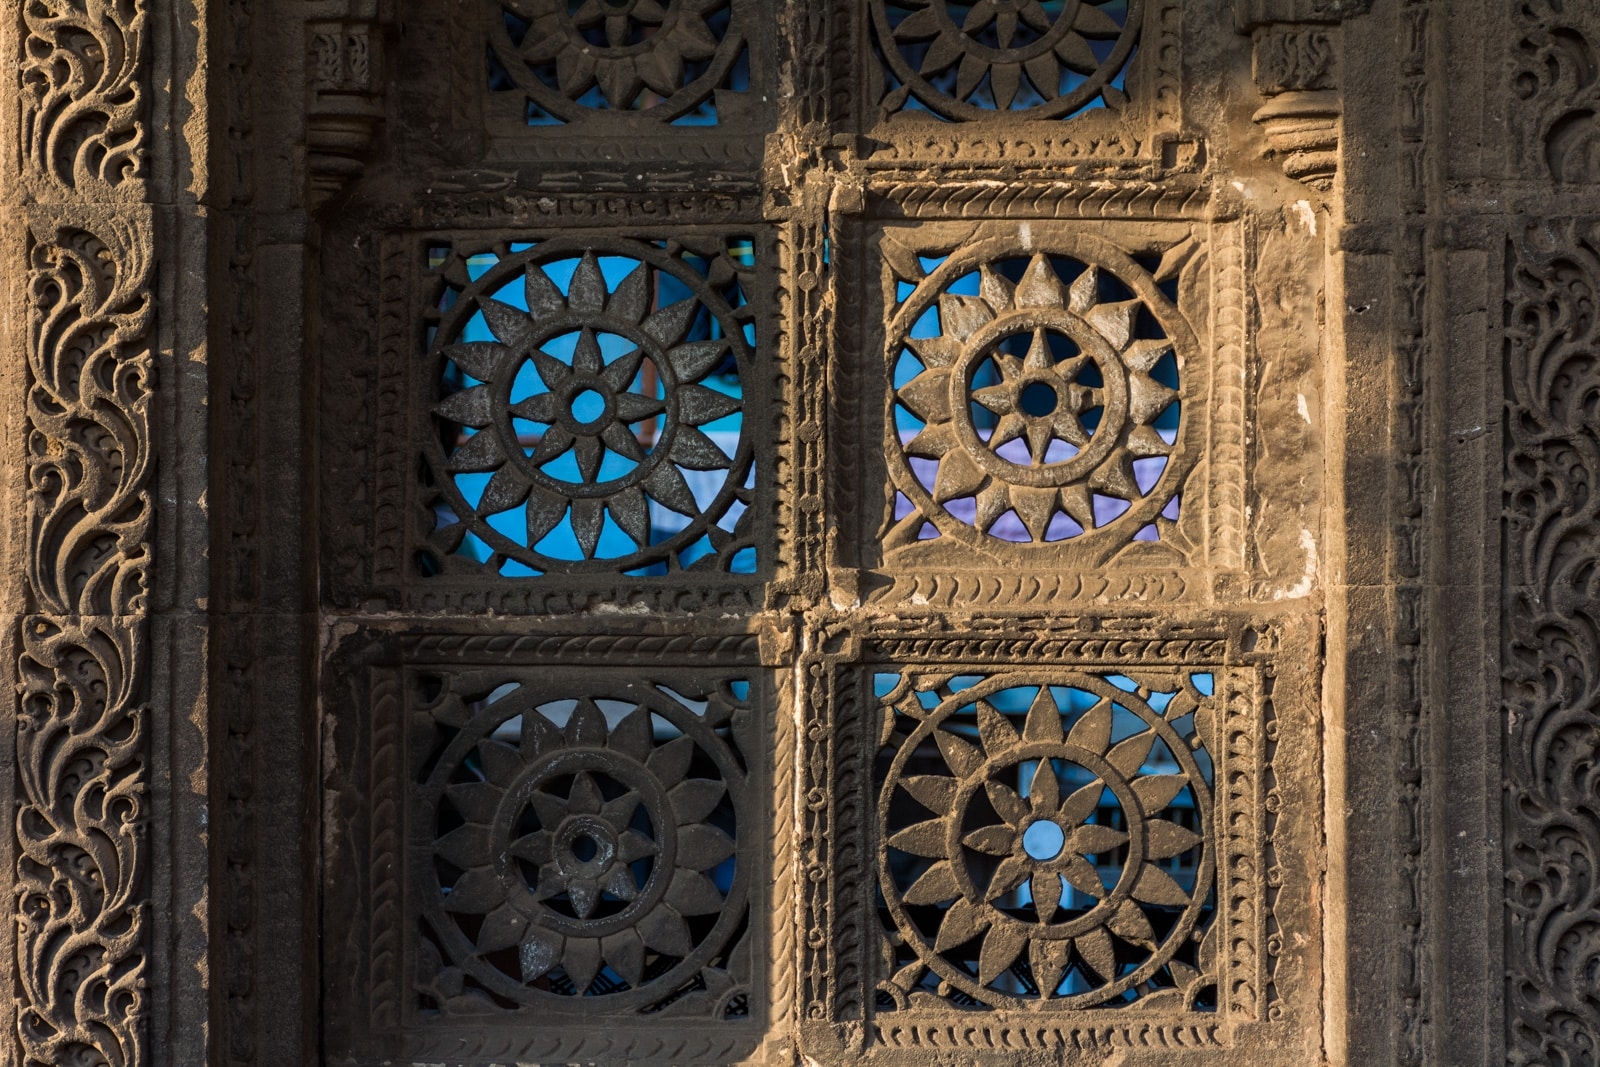 Weekend guide to Ahmedabad, Gujarat, India - Lattice window carving at Sidi Saeed Mosque - Lost With Purpose travel blog